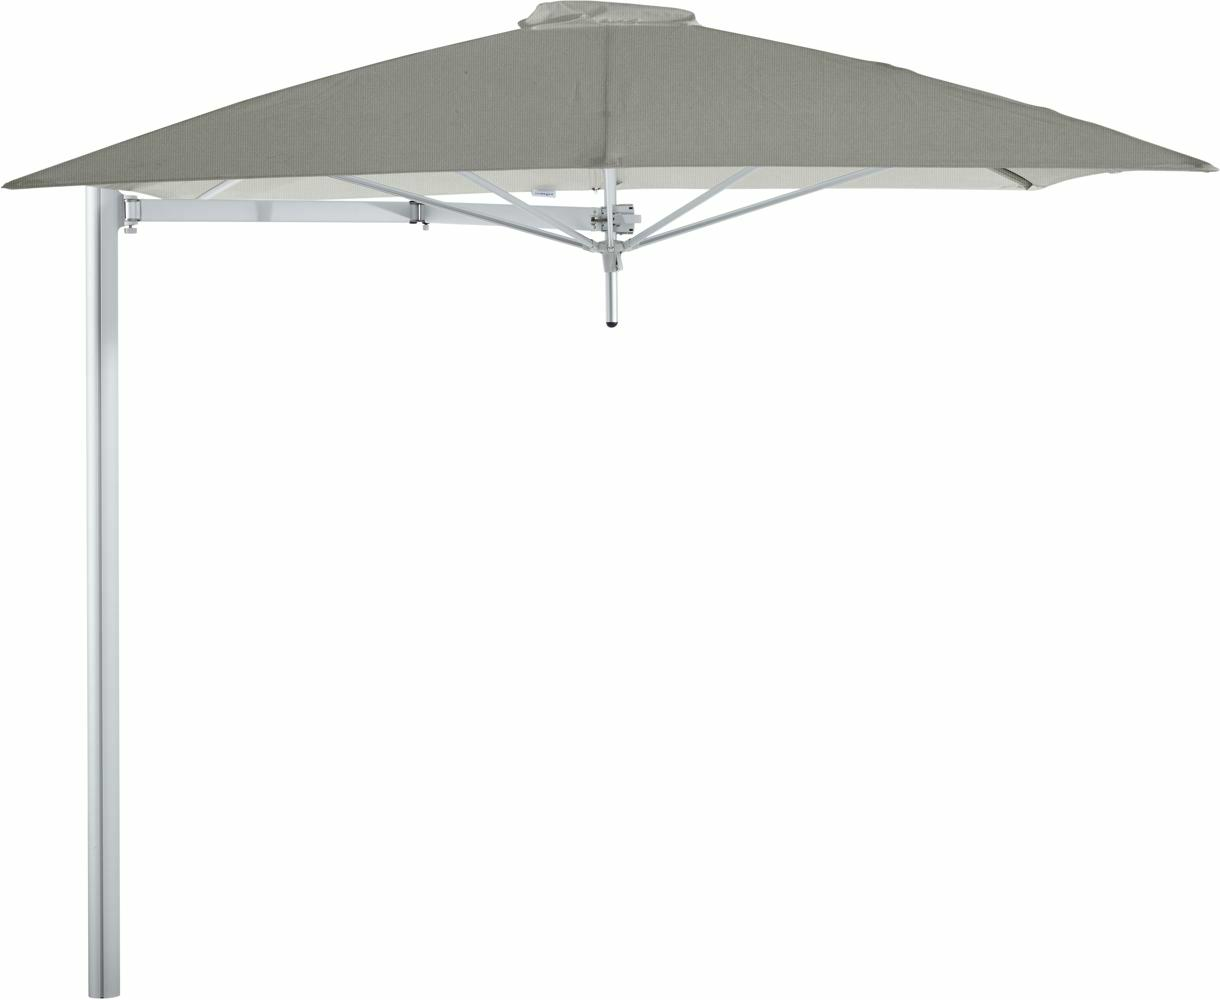 Paraflex cantilever umbrella square 2,3 m with Grey fabric and a Neo arm